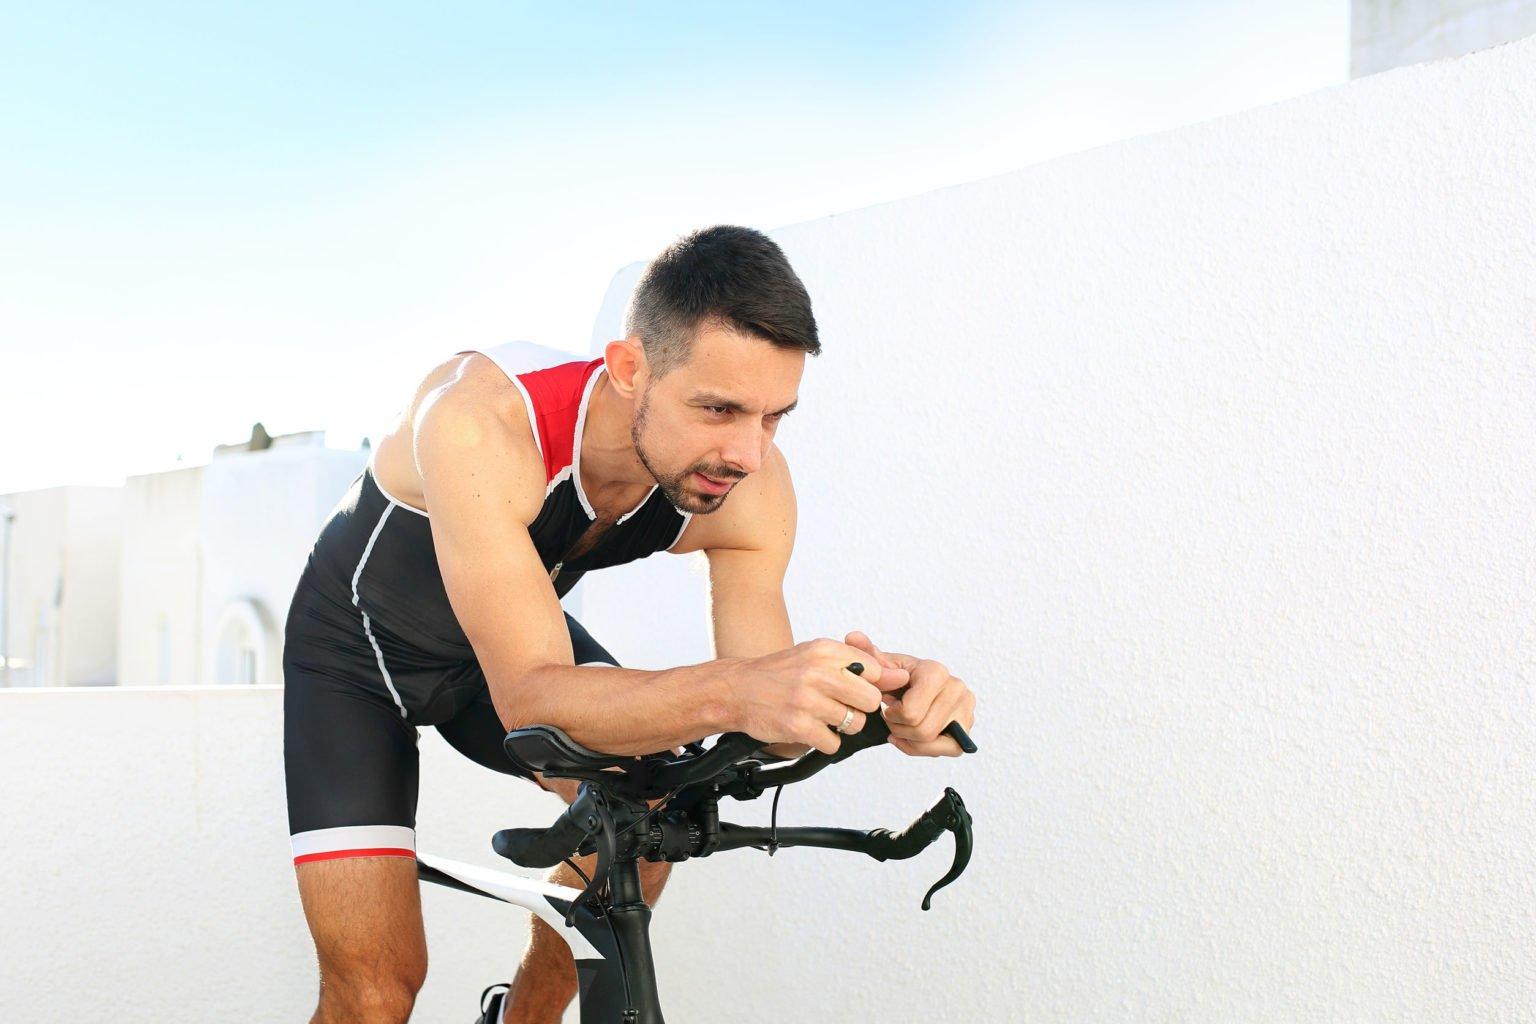 Caucasian Man Working Out On A Bike Outside Arbor Vita8